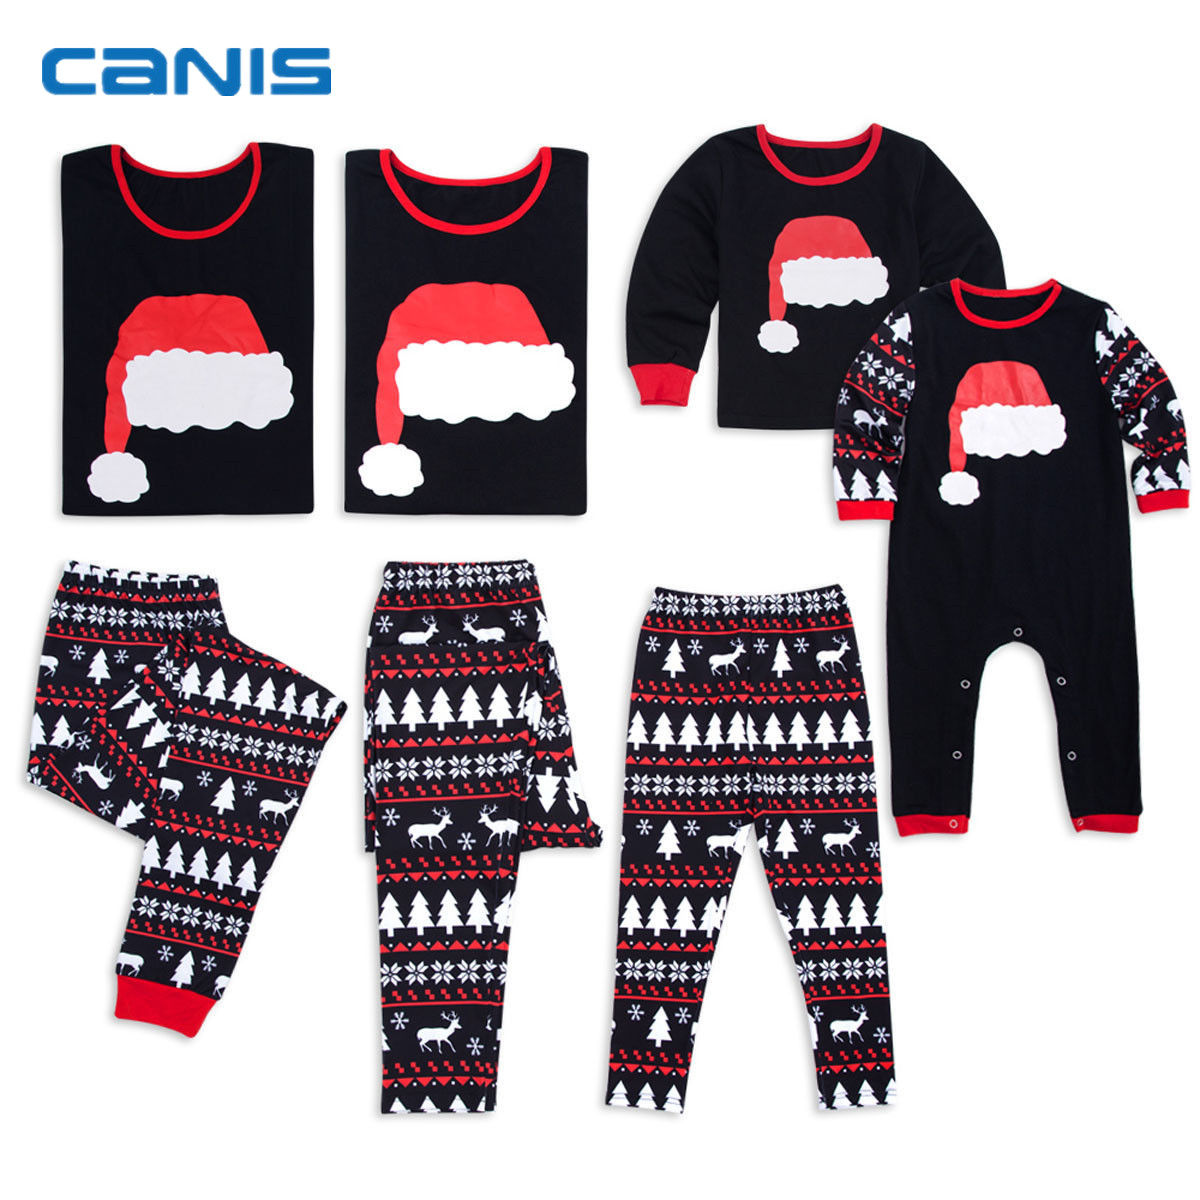 25d1ff4517c 2018 Brand New Christmas Family Matching Cute Hat Pajamas Adult Women Kid  Baby Sleepwear Set Santa Hat Tops Shirt + Elks Pants-in Matching Family  Outfits ...